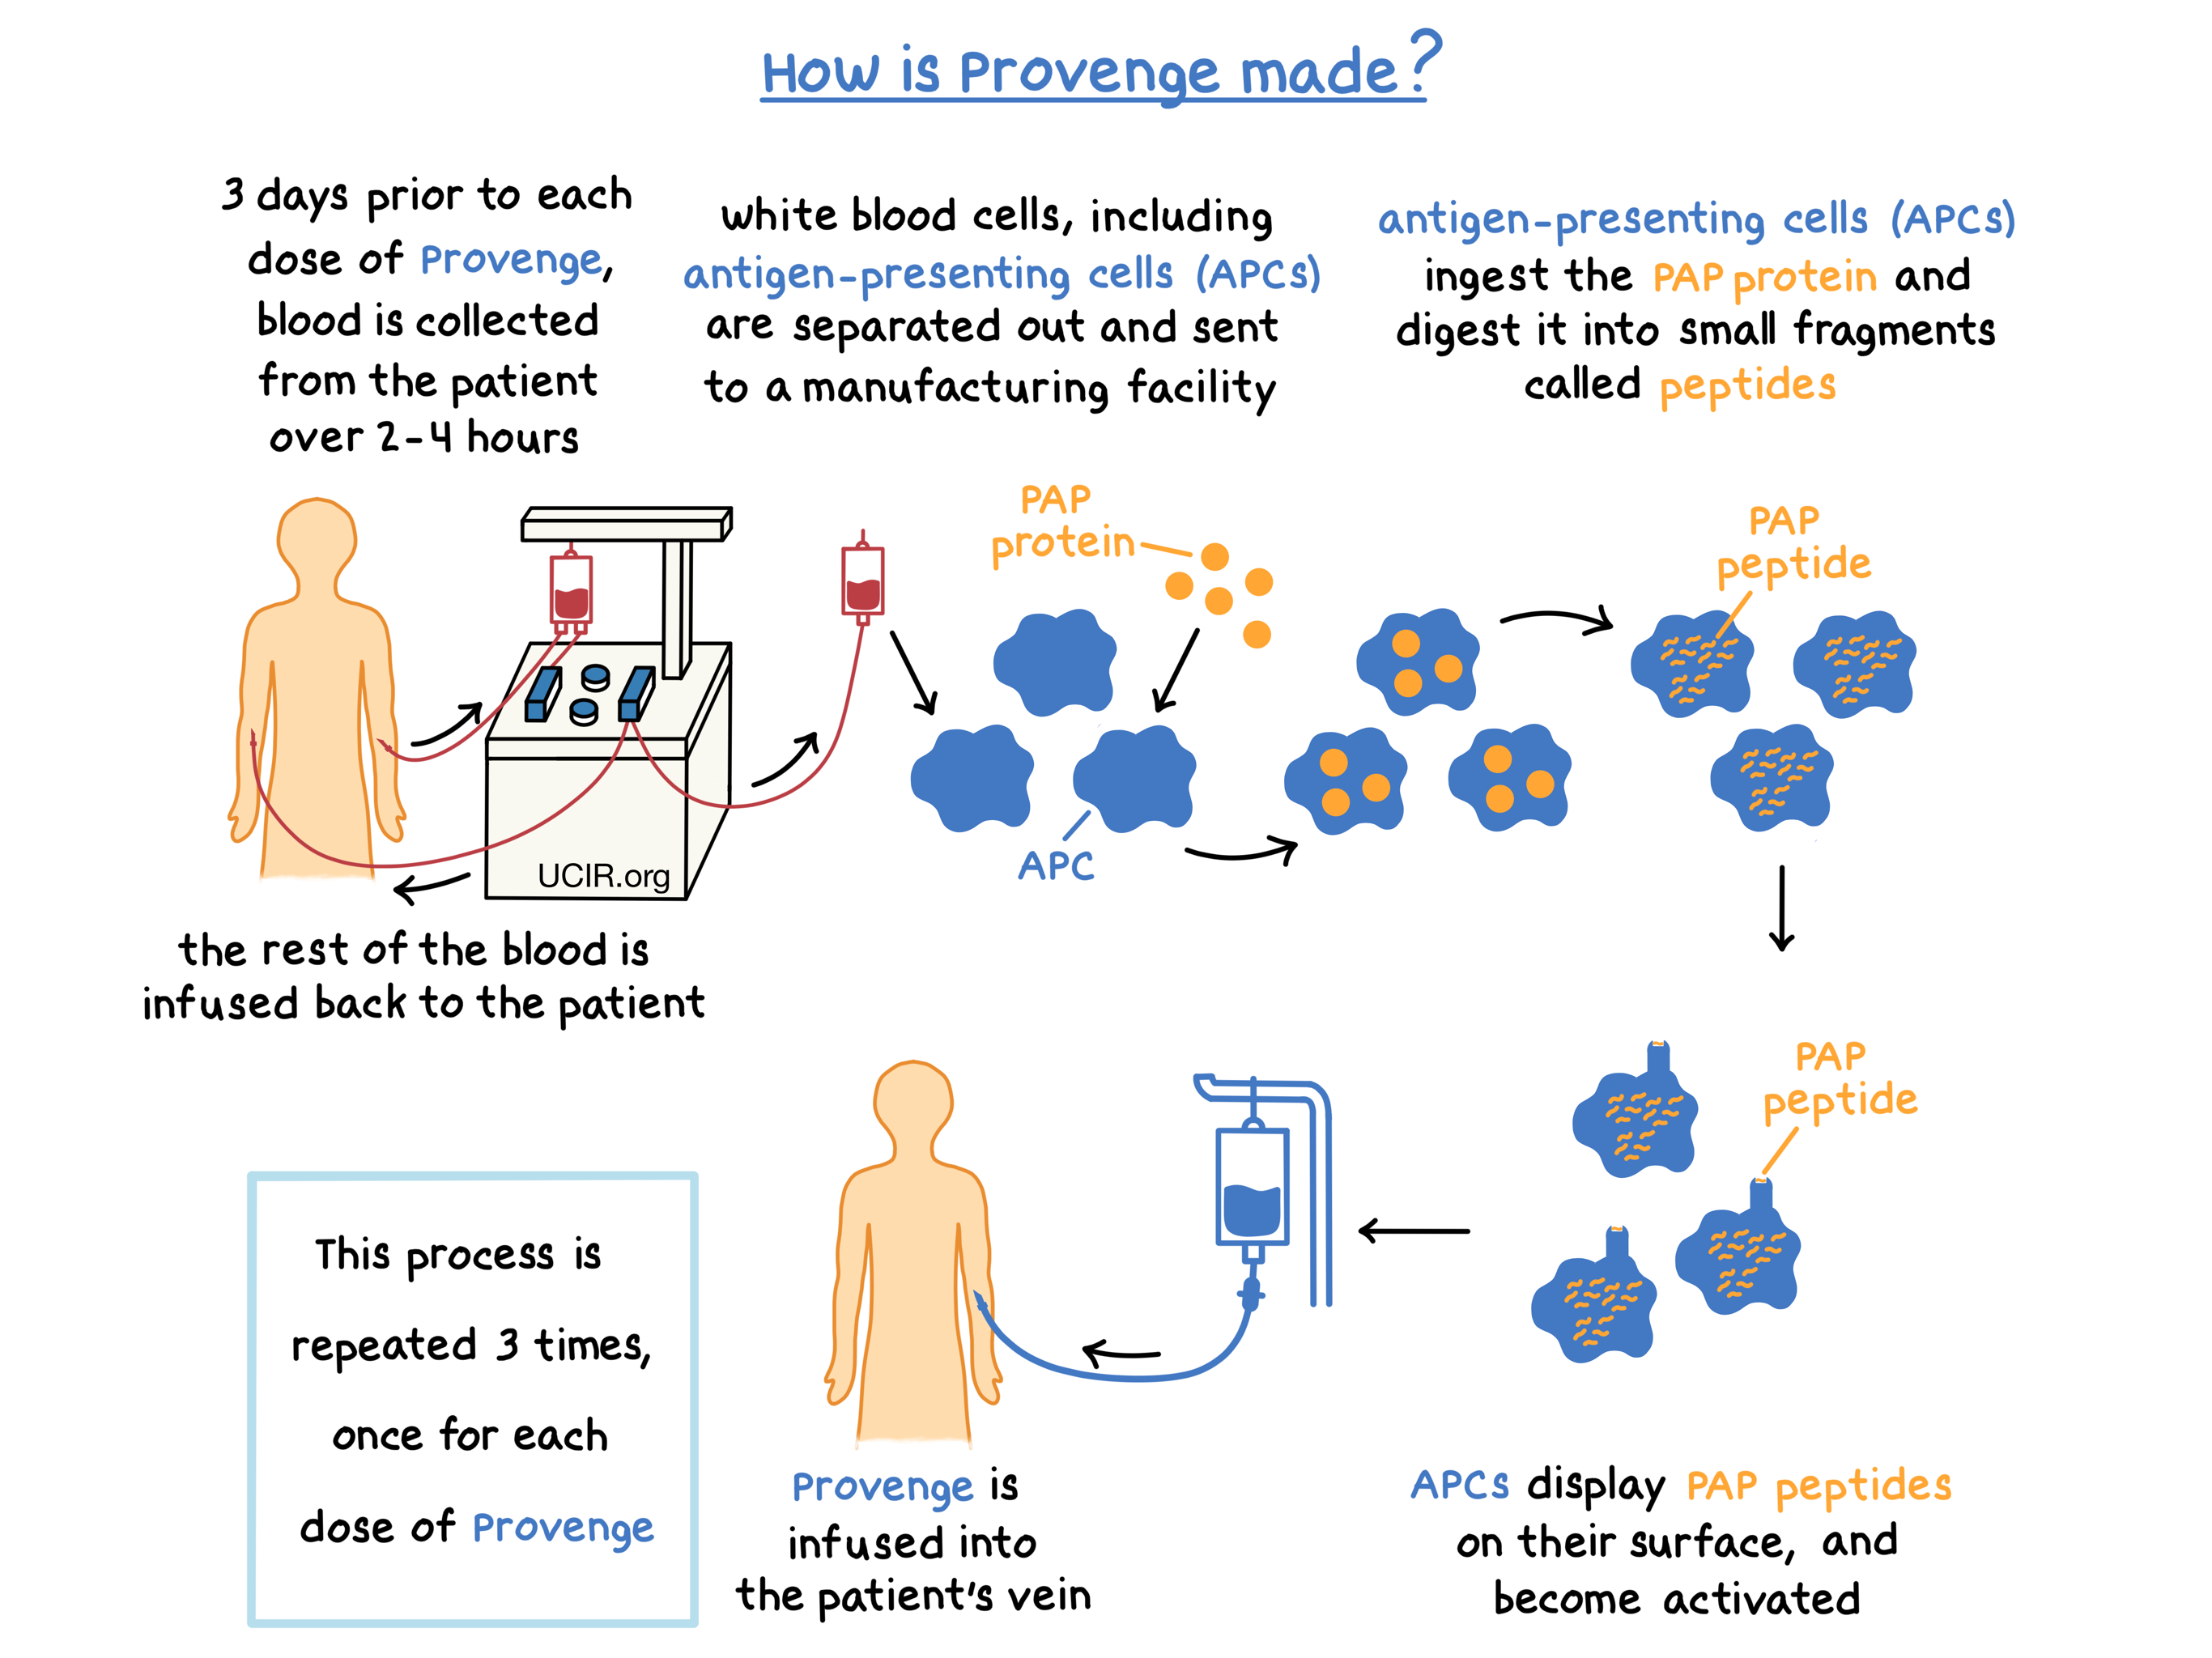 Illustration showing how Provenge is made